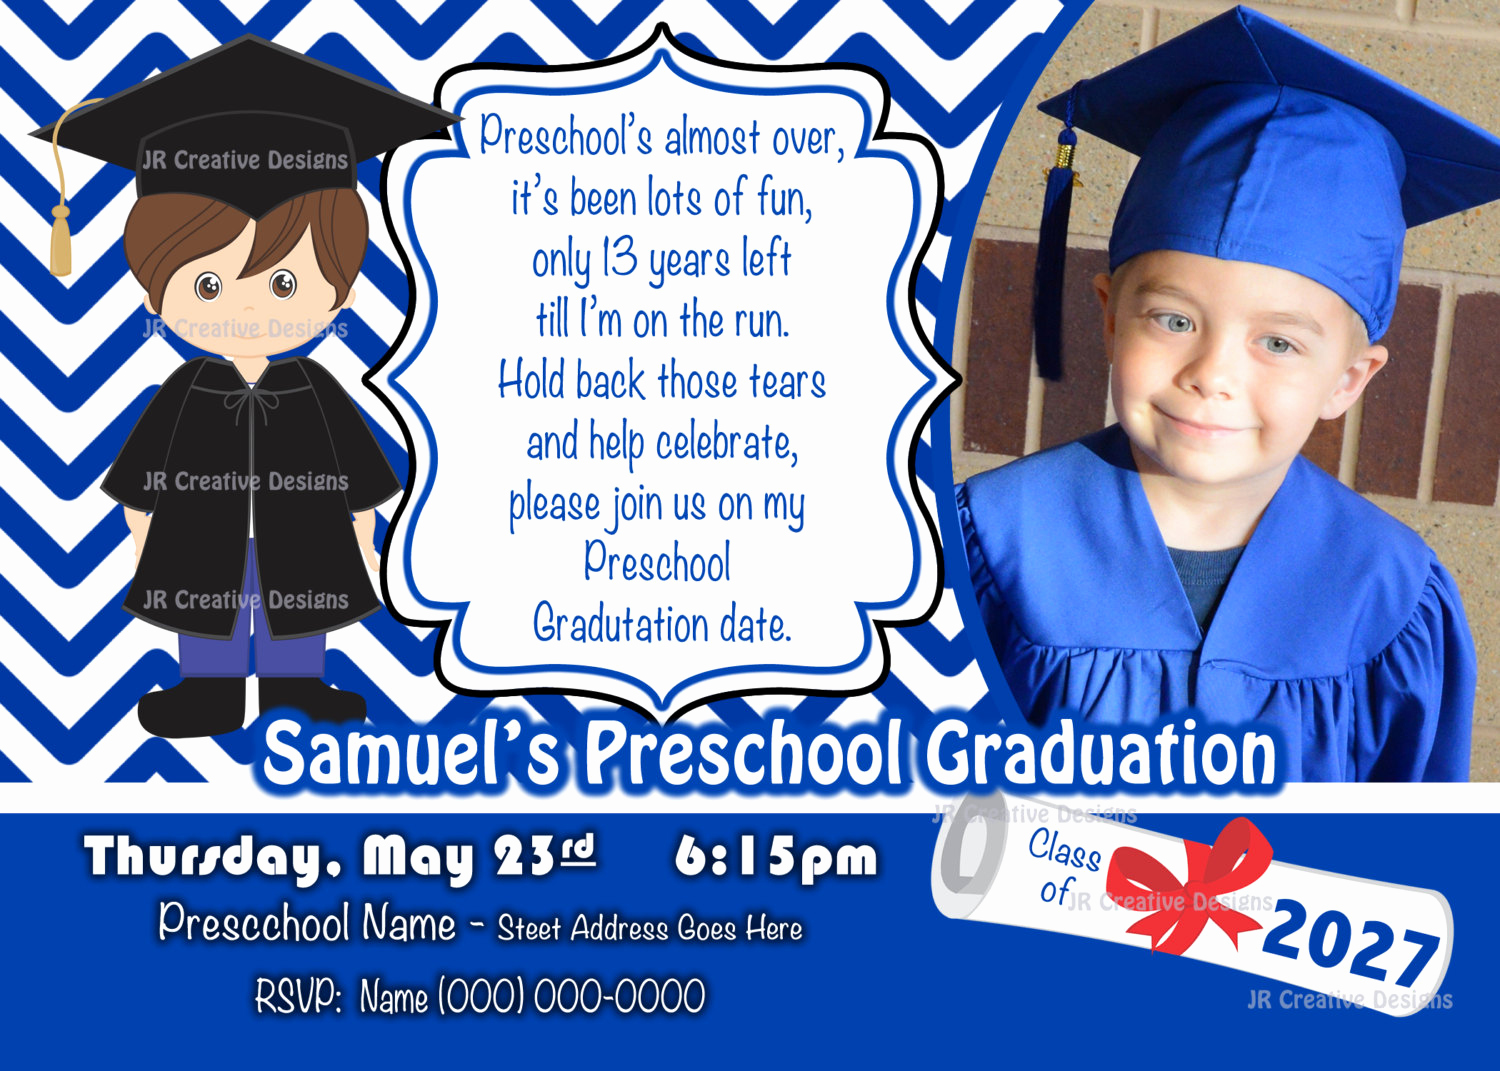 Kindergarten Graduation Invitation Wording Awesome Preschool Graduation Invitation Kindergarten Graduation